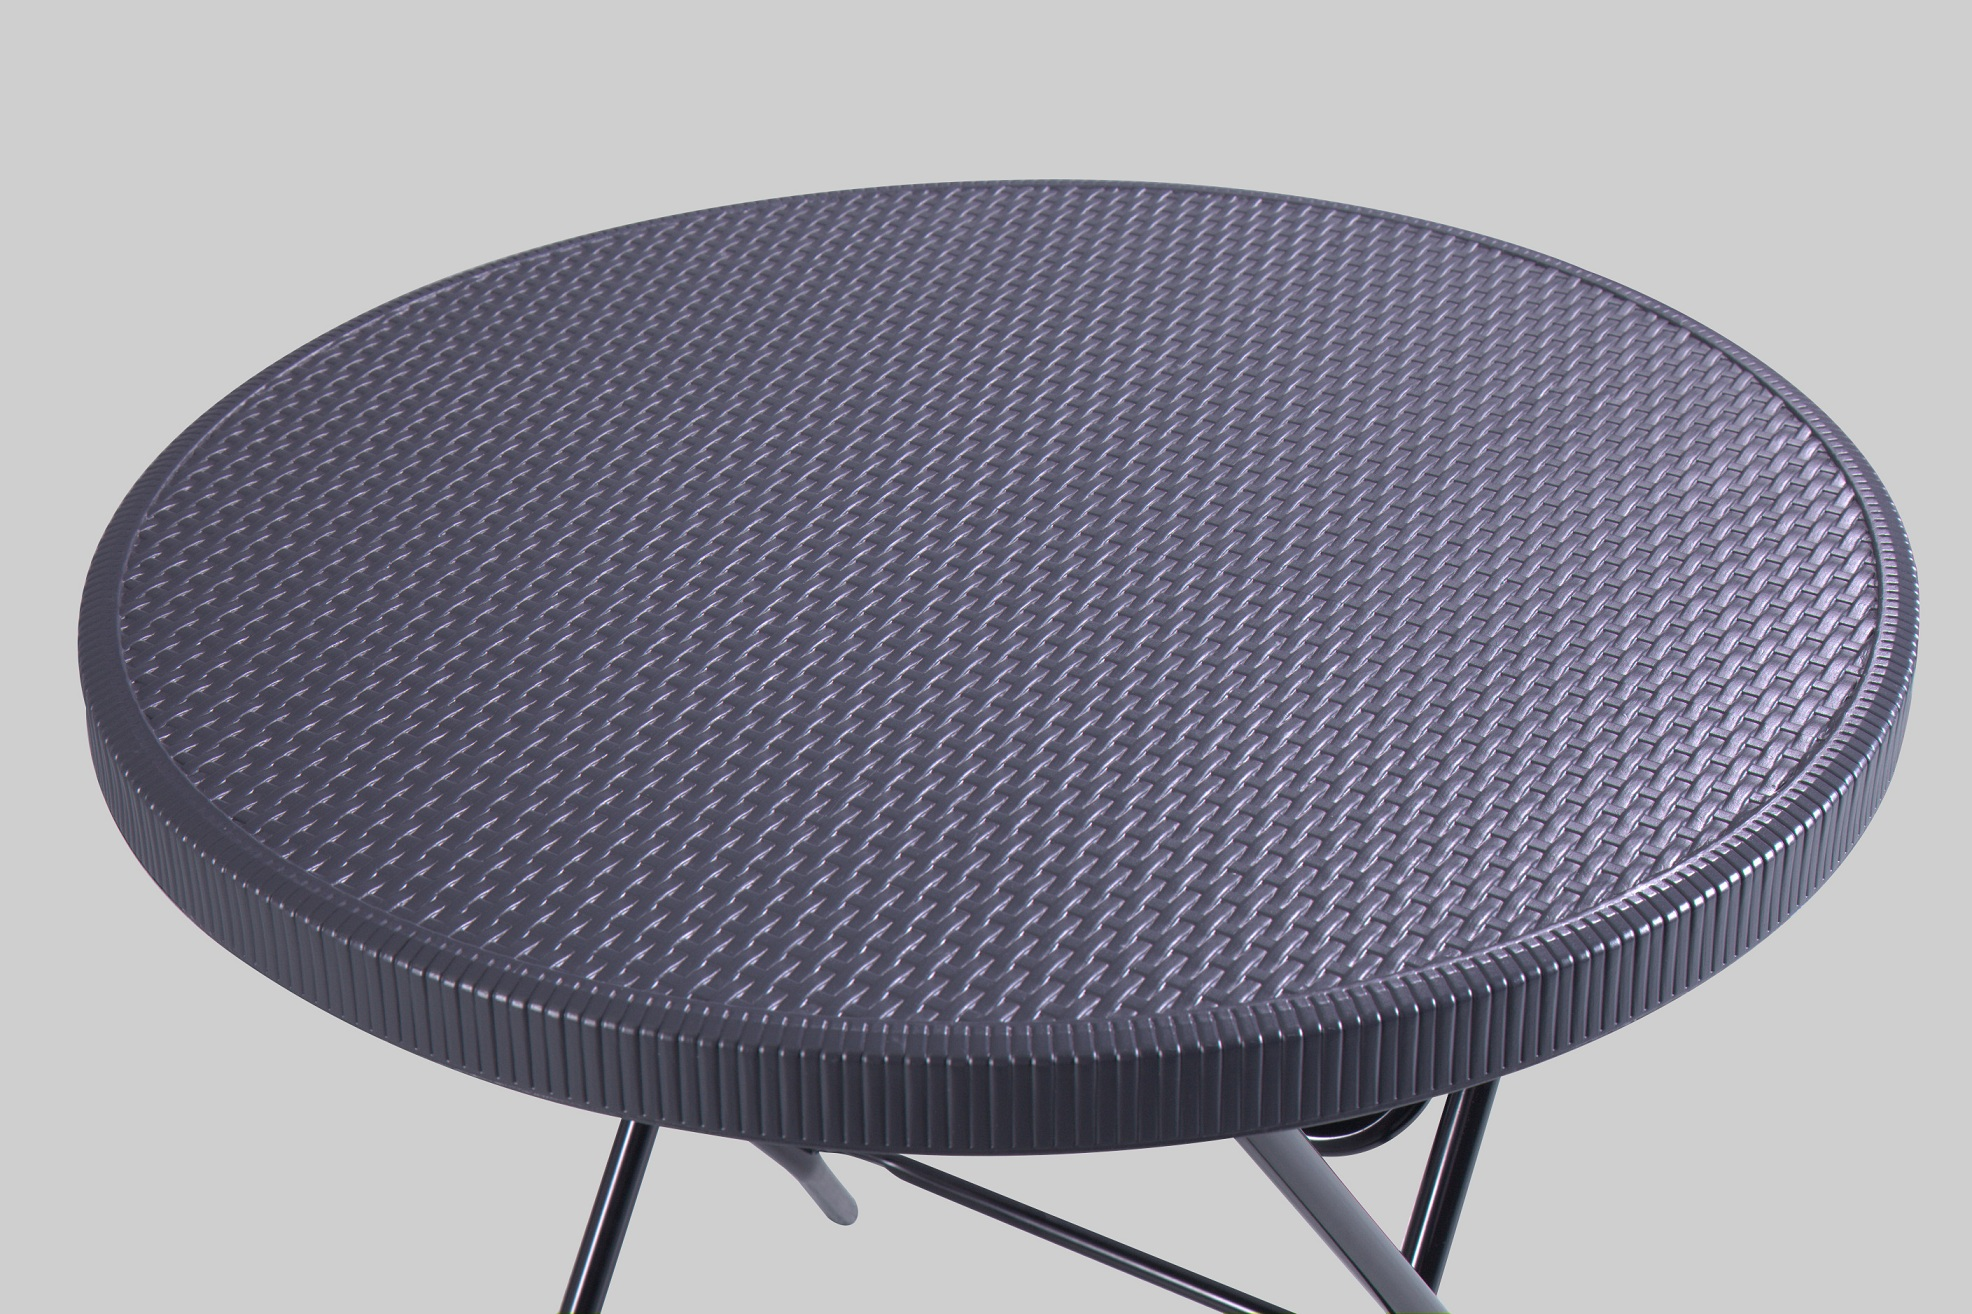 Round Table with Rattan Design